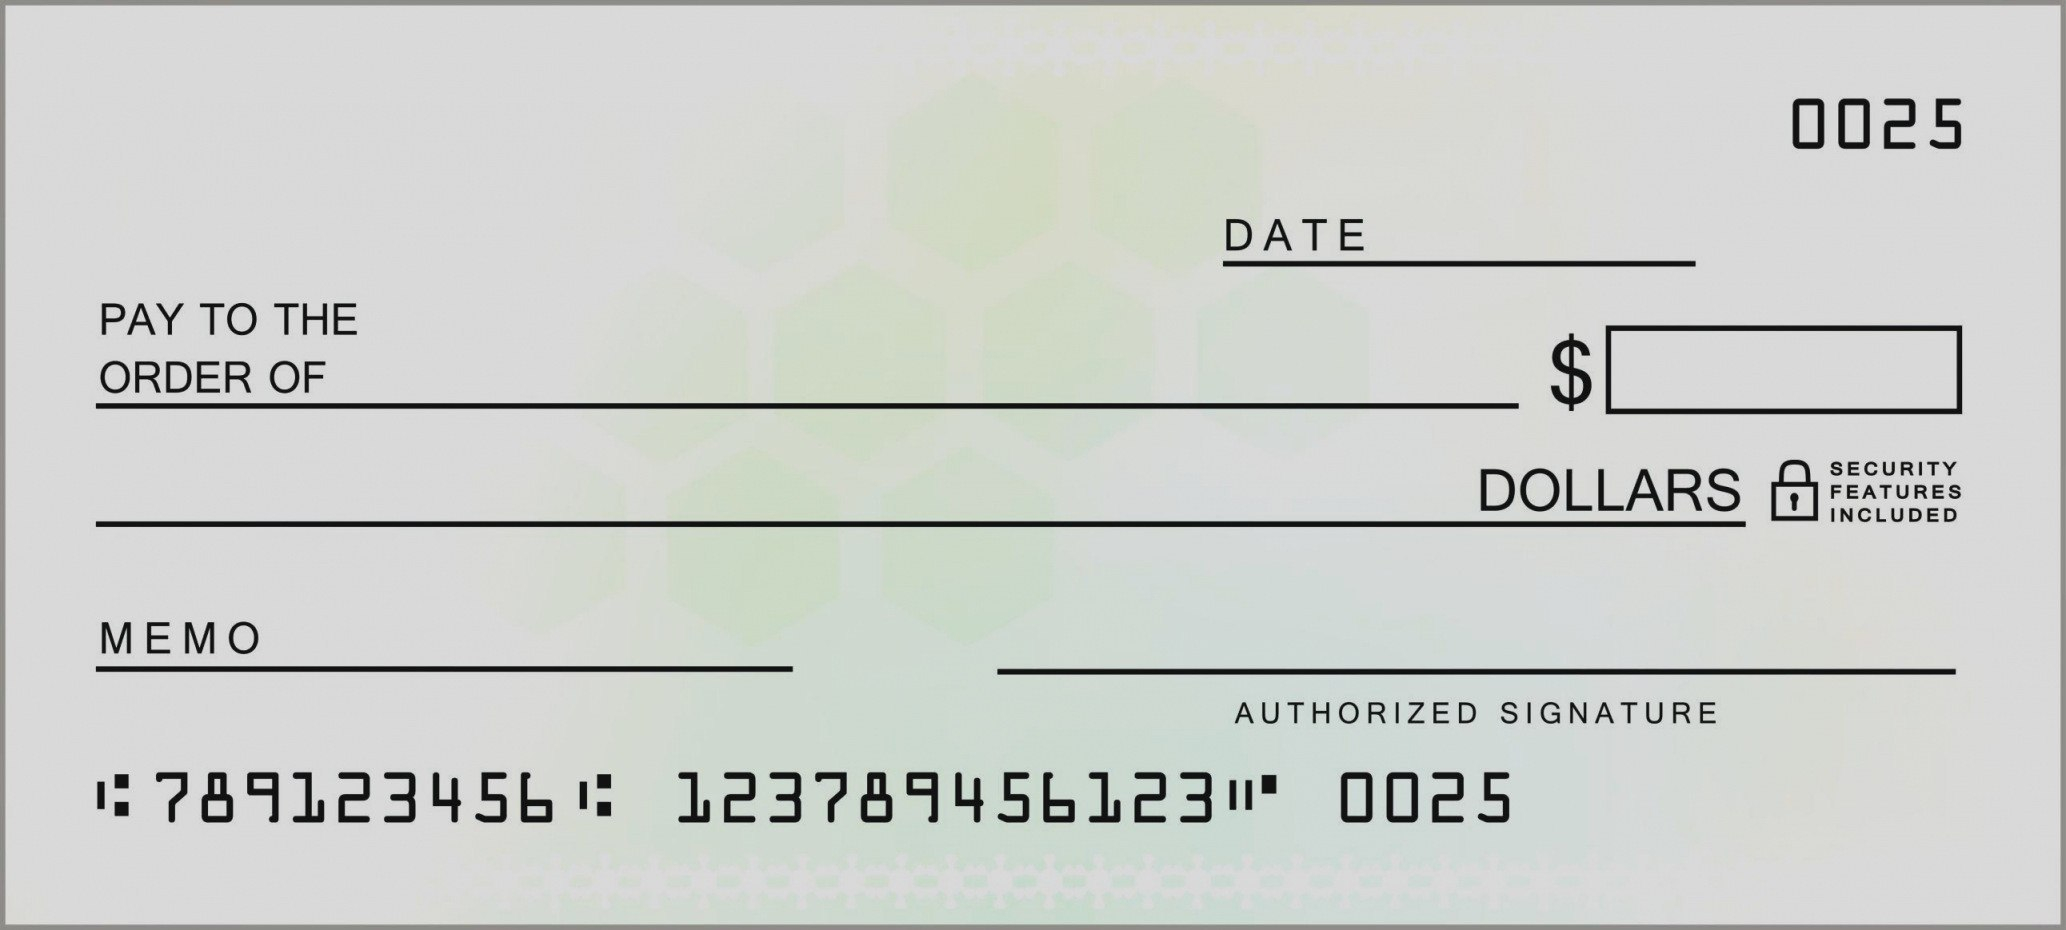 Fake Blank Check Template Cheque Free Awesome Payroll Templates Regarding Editable Blank Check Template